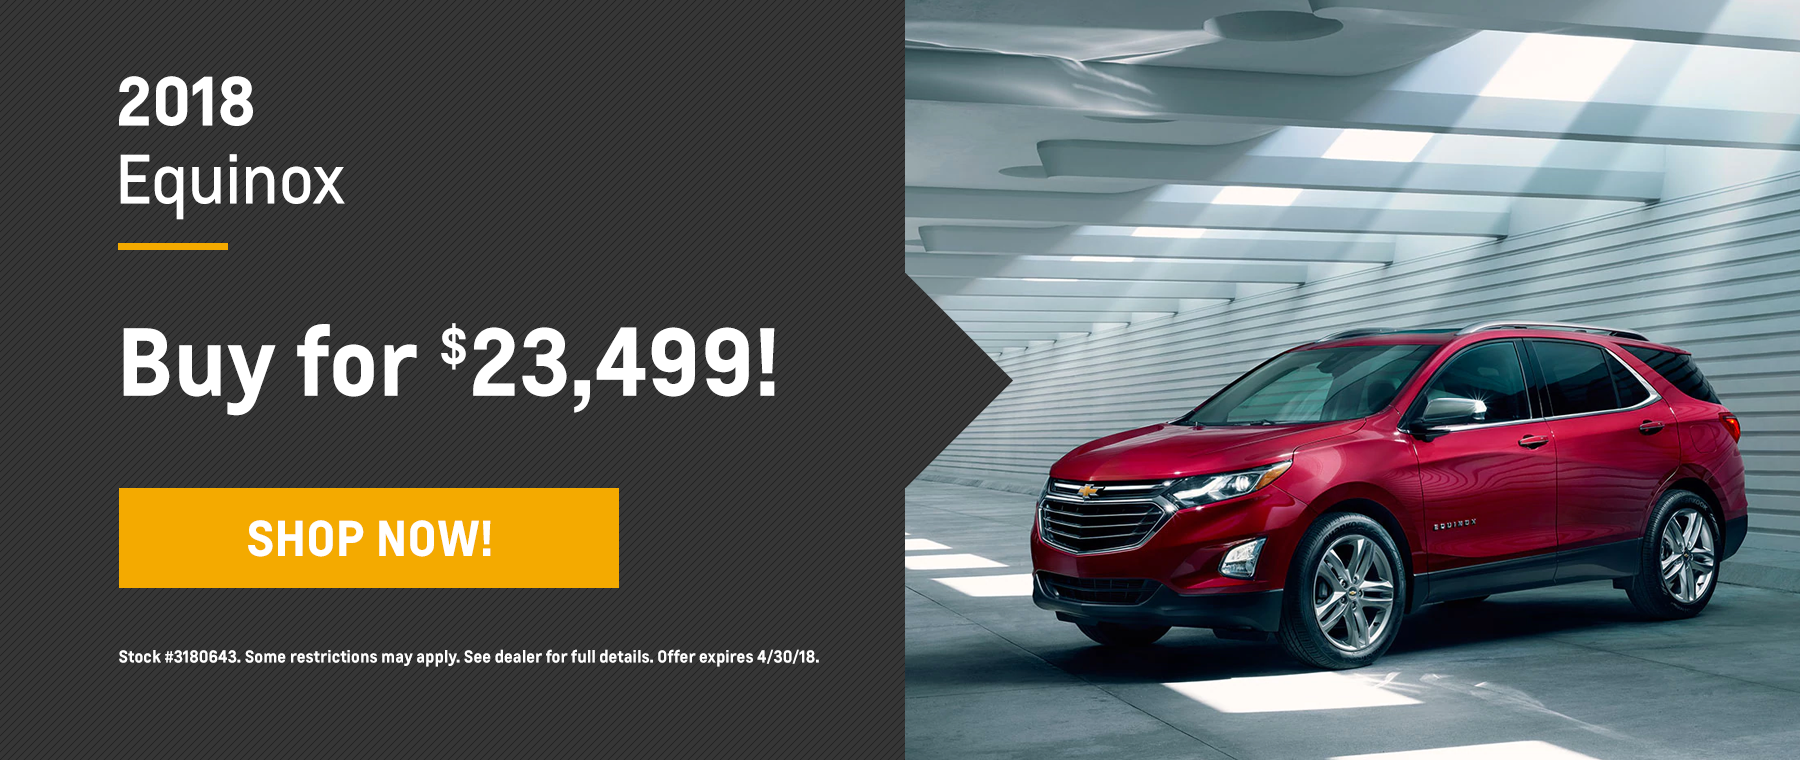 Equinox Biggers Chevrolet April Offer Homepage